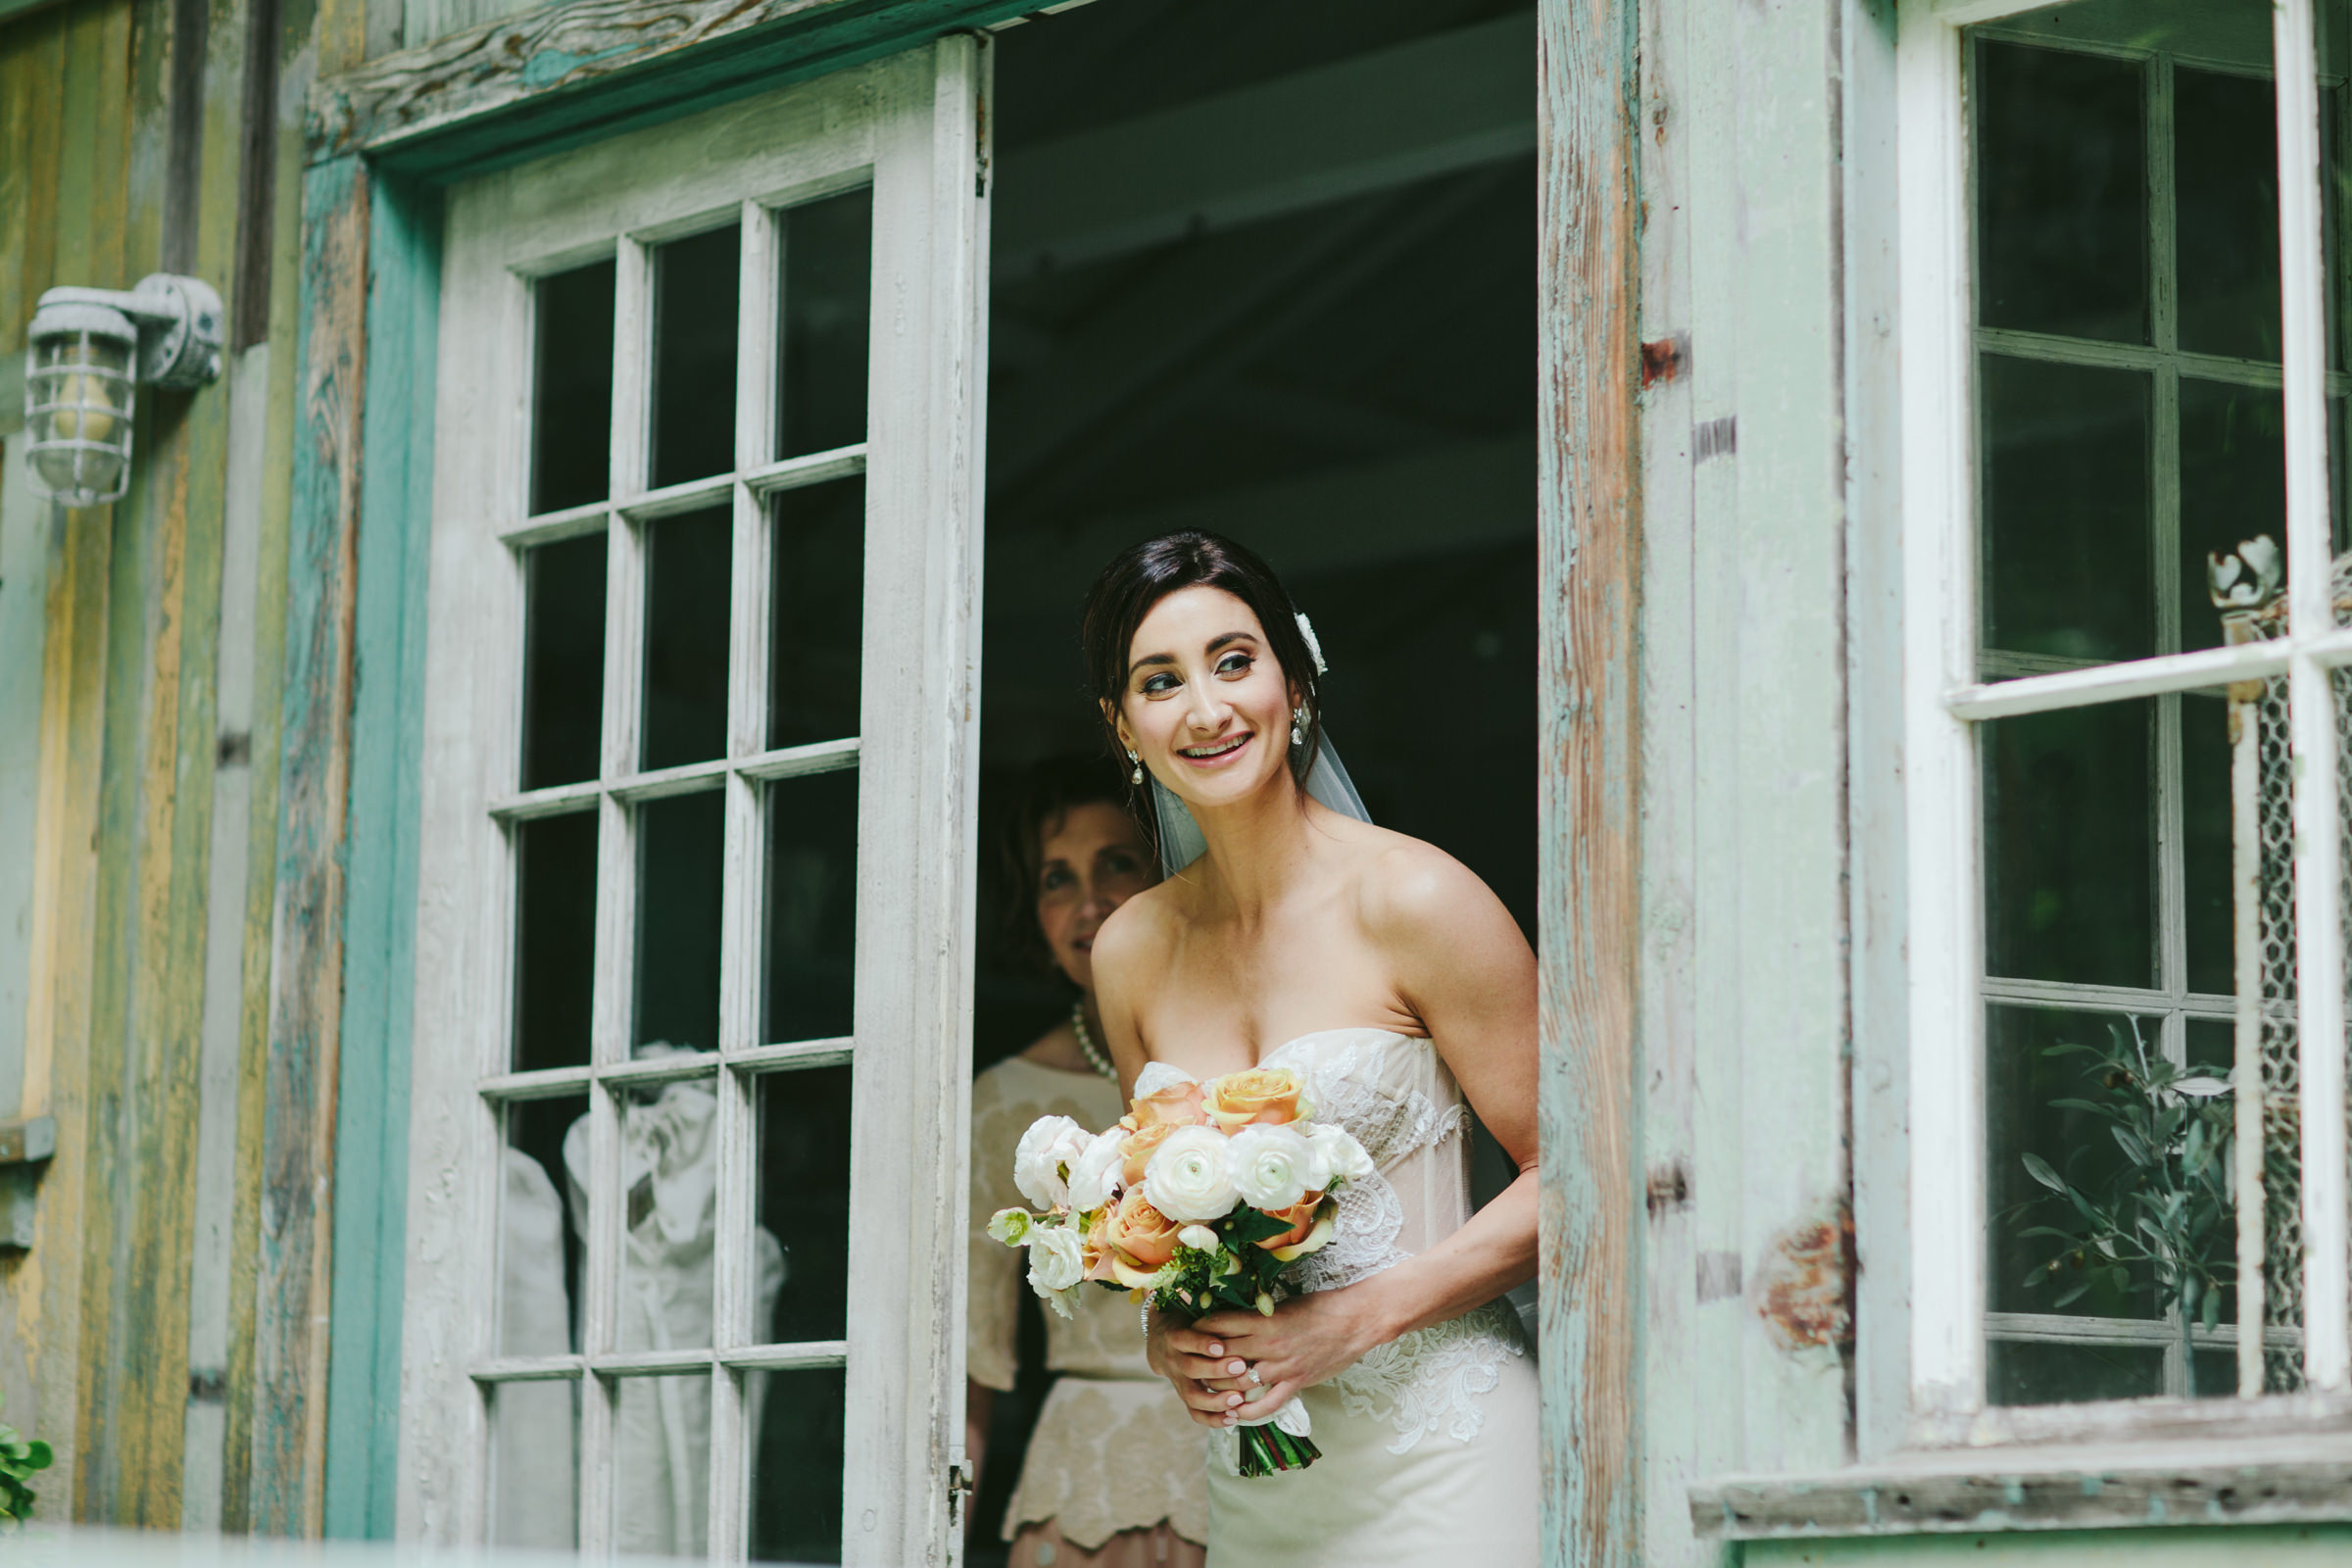 Haiku Mill Maui bridal portrait in window - photo by Melia Lucida